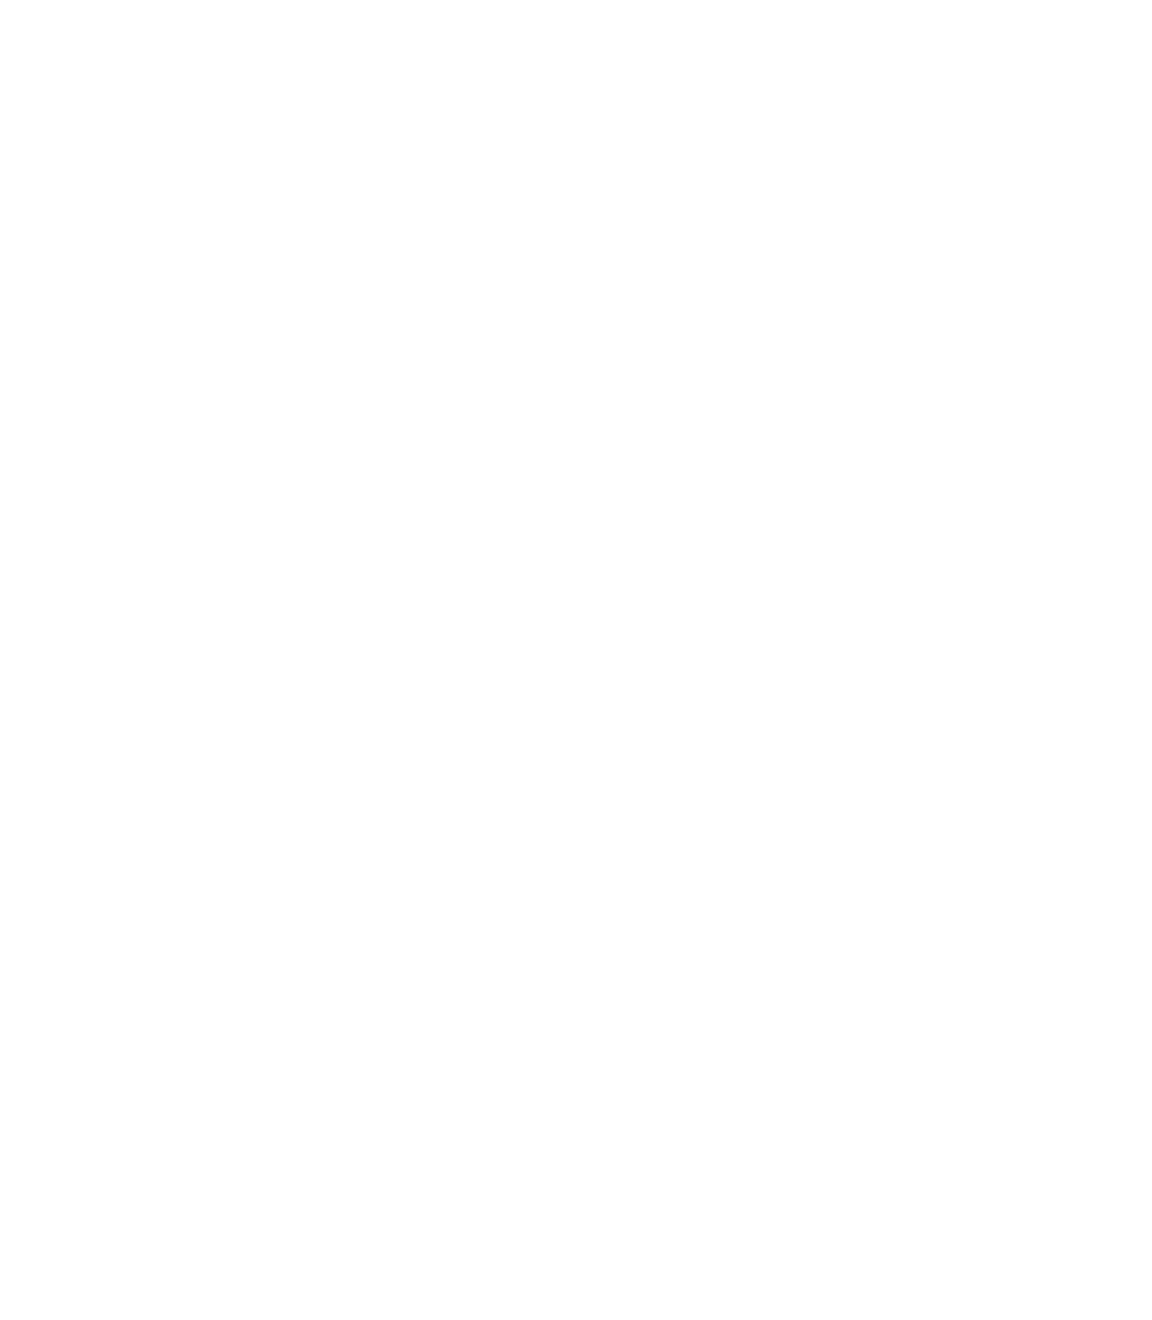 Your Fallen Majesty's Company logo